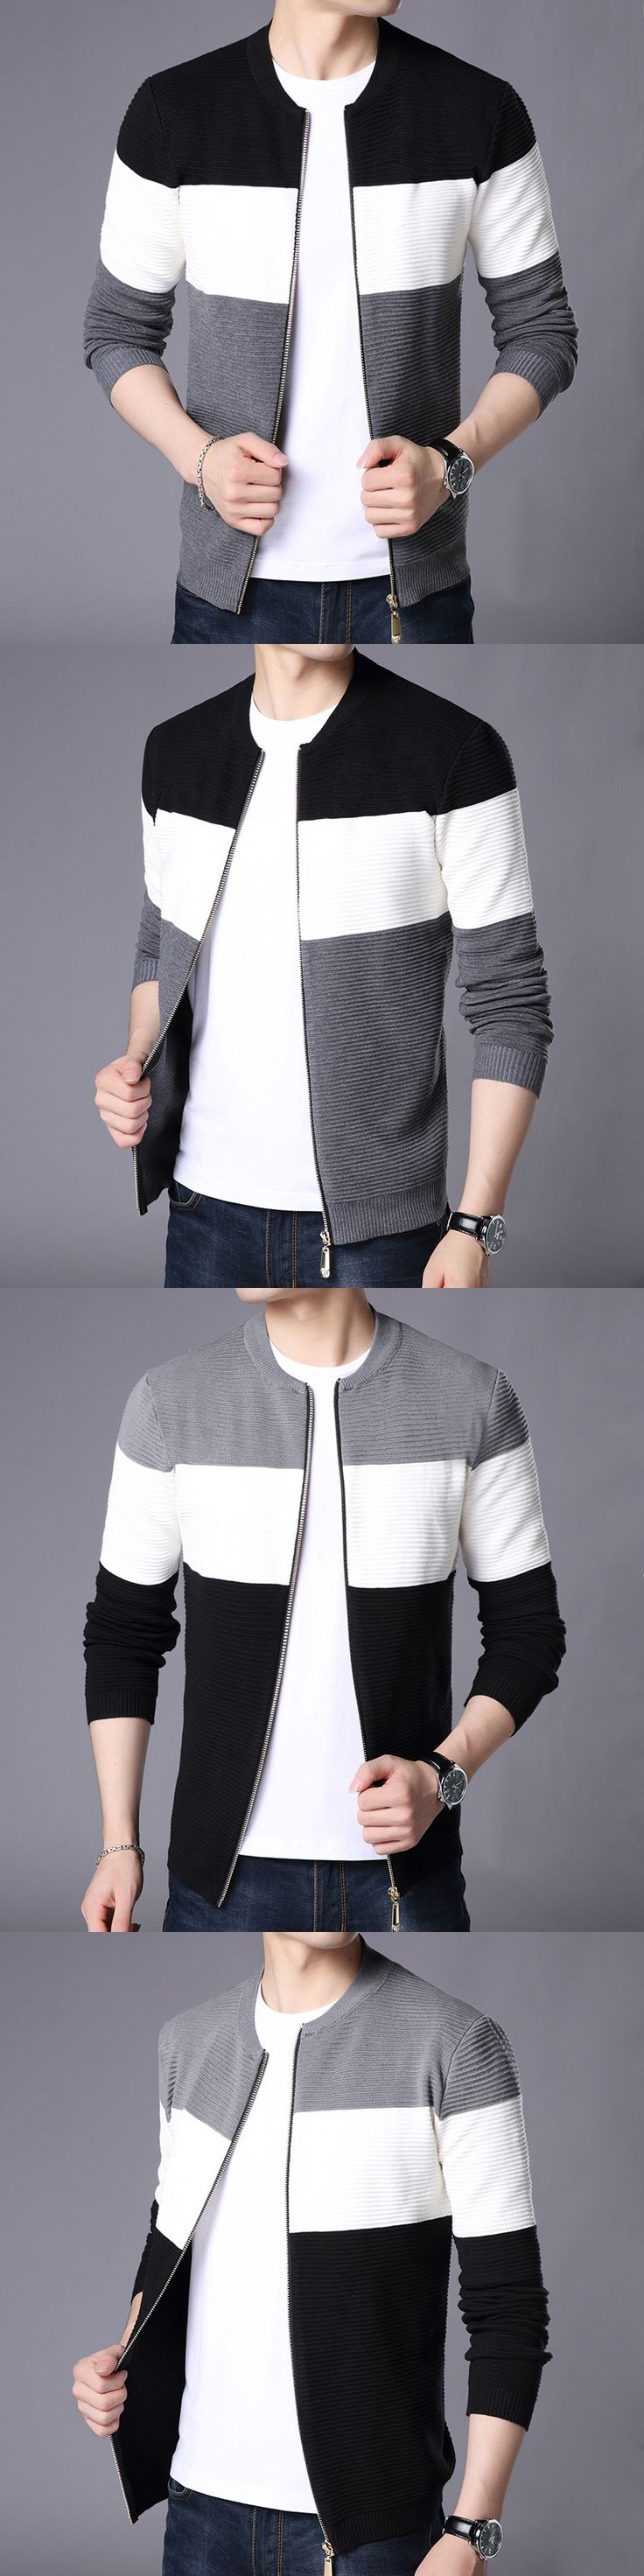 New Autumn Winter Knitted Cardigan Men Casual Wear Fashion Black White Grey Patch Work Sweater Zipper Cardigan Male